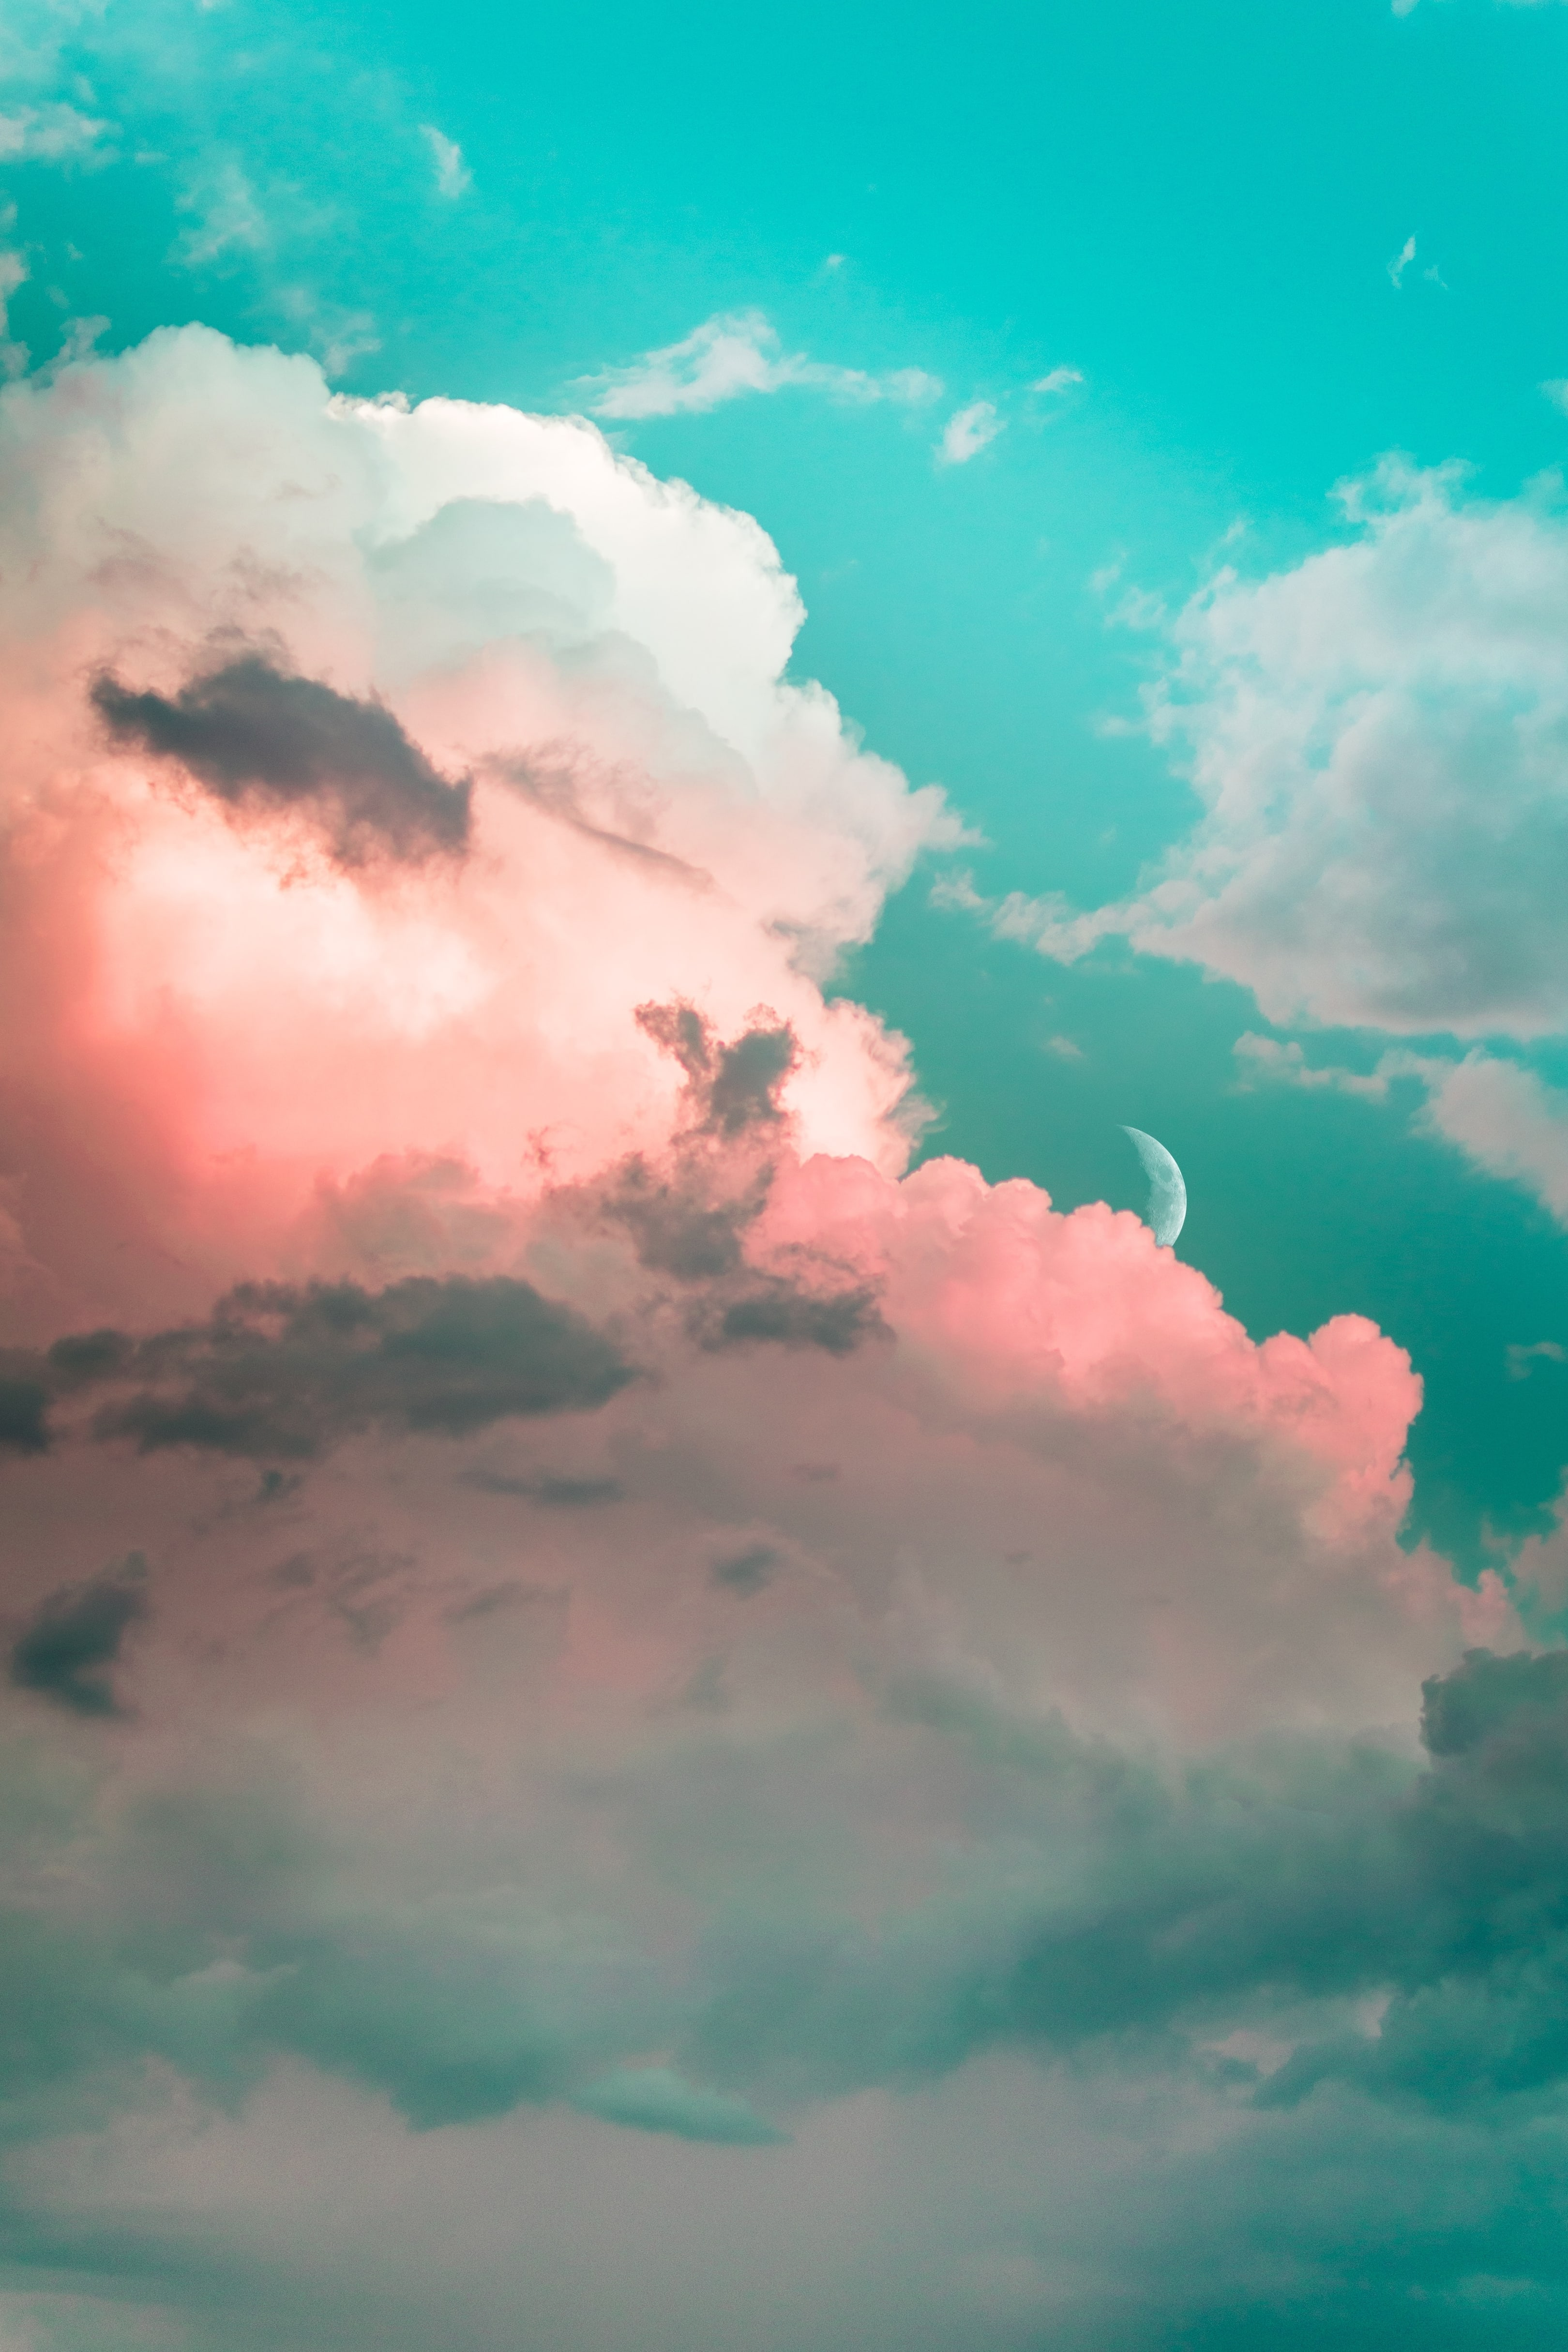 Cloud Clouds Sky Aesthetic Image By Puffy Clouds